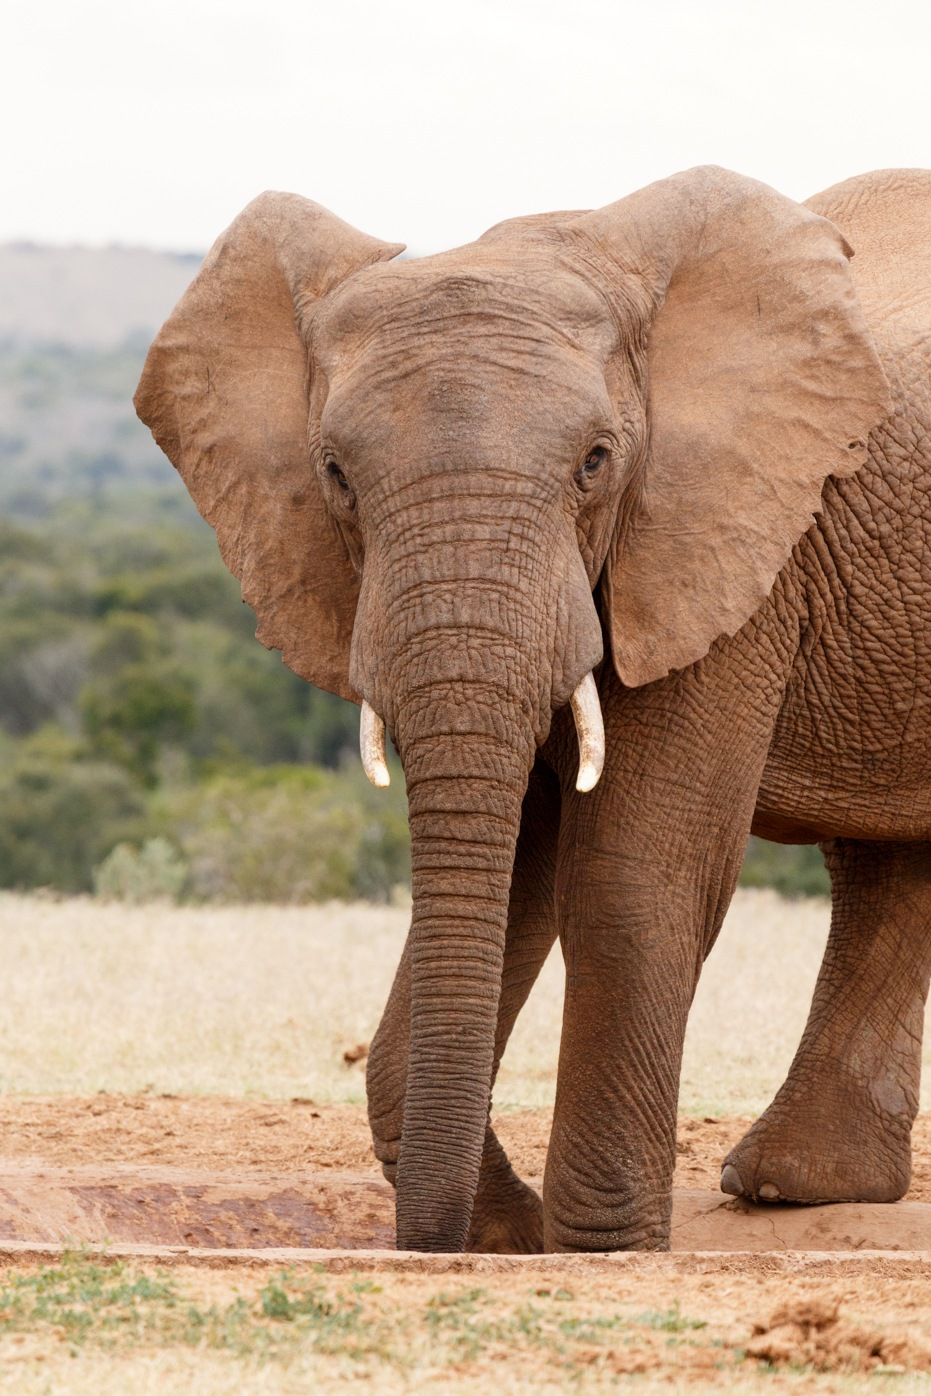 Elephant Standing and Posing while drinking water by Charissa de Scande Lotter